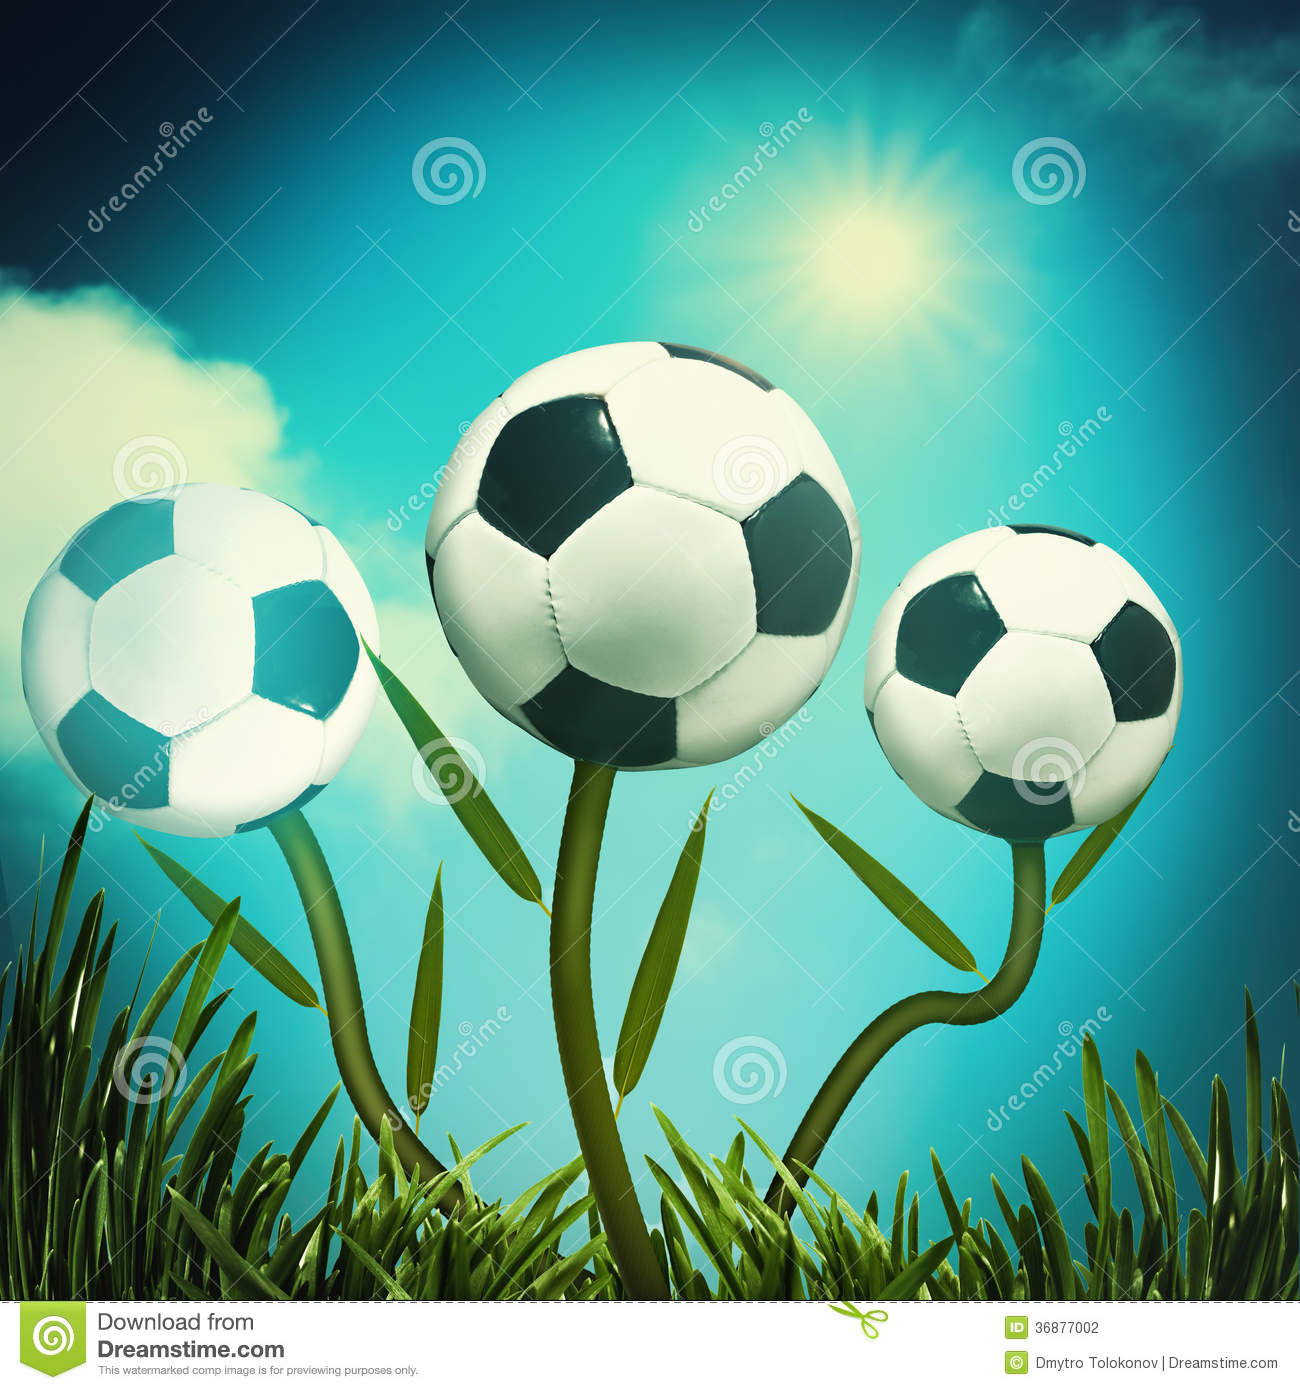 Download Ambiti Di Provenienza Divertenti Di Calcio E Di Calcio Illustrazione di Stock - Illustrazione di obiettivo, background: 36877002